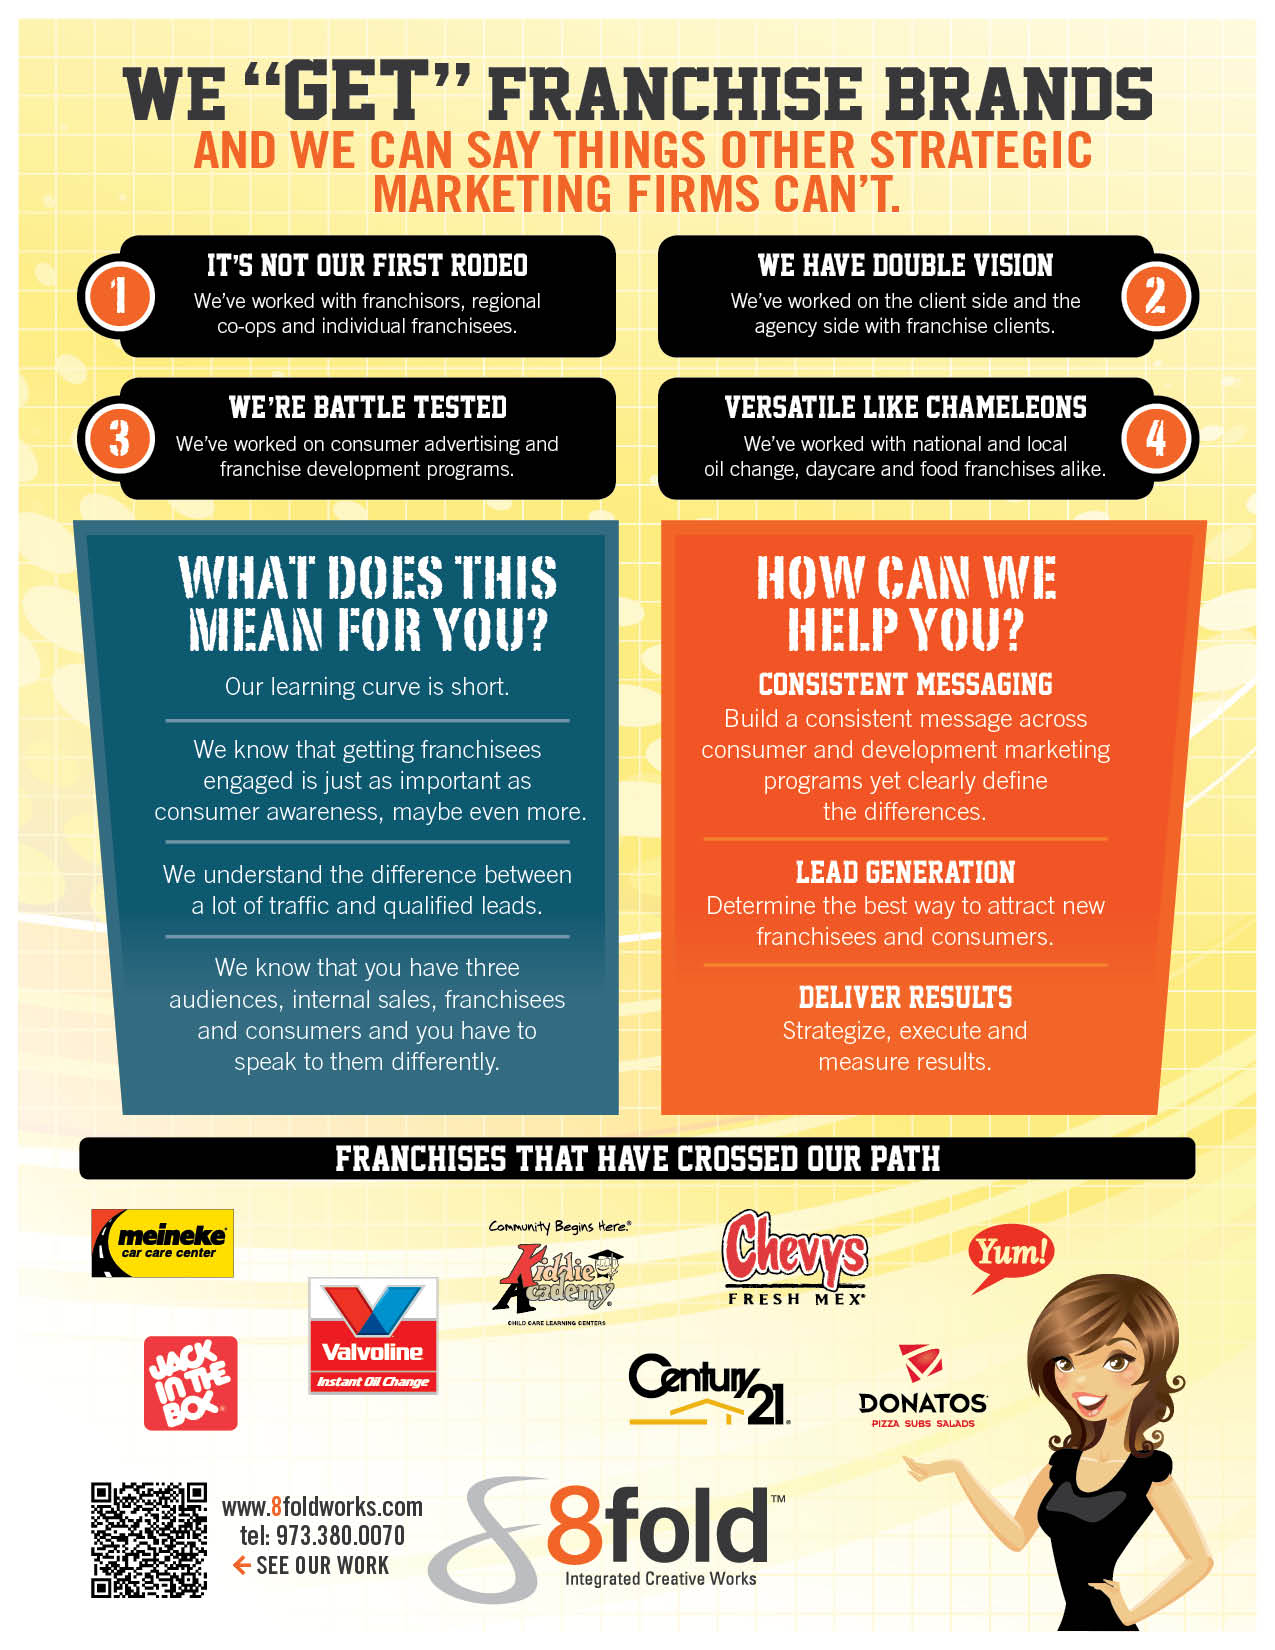 Franchise Marketing Infographic